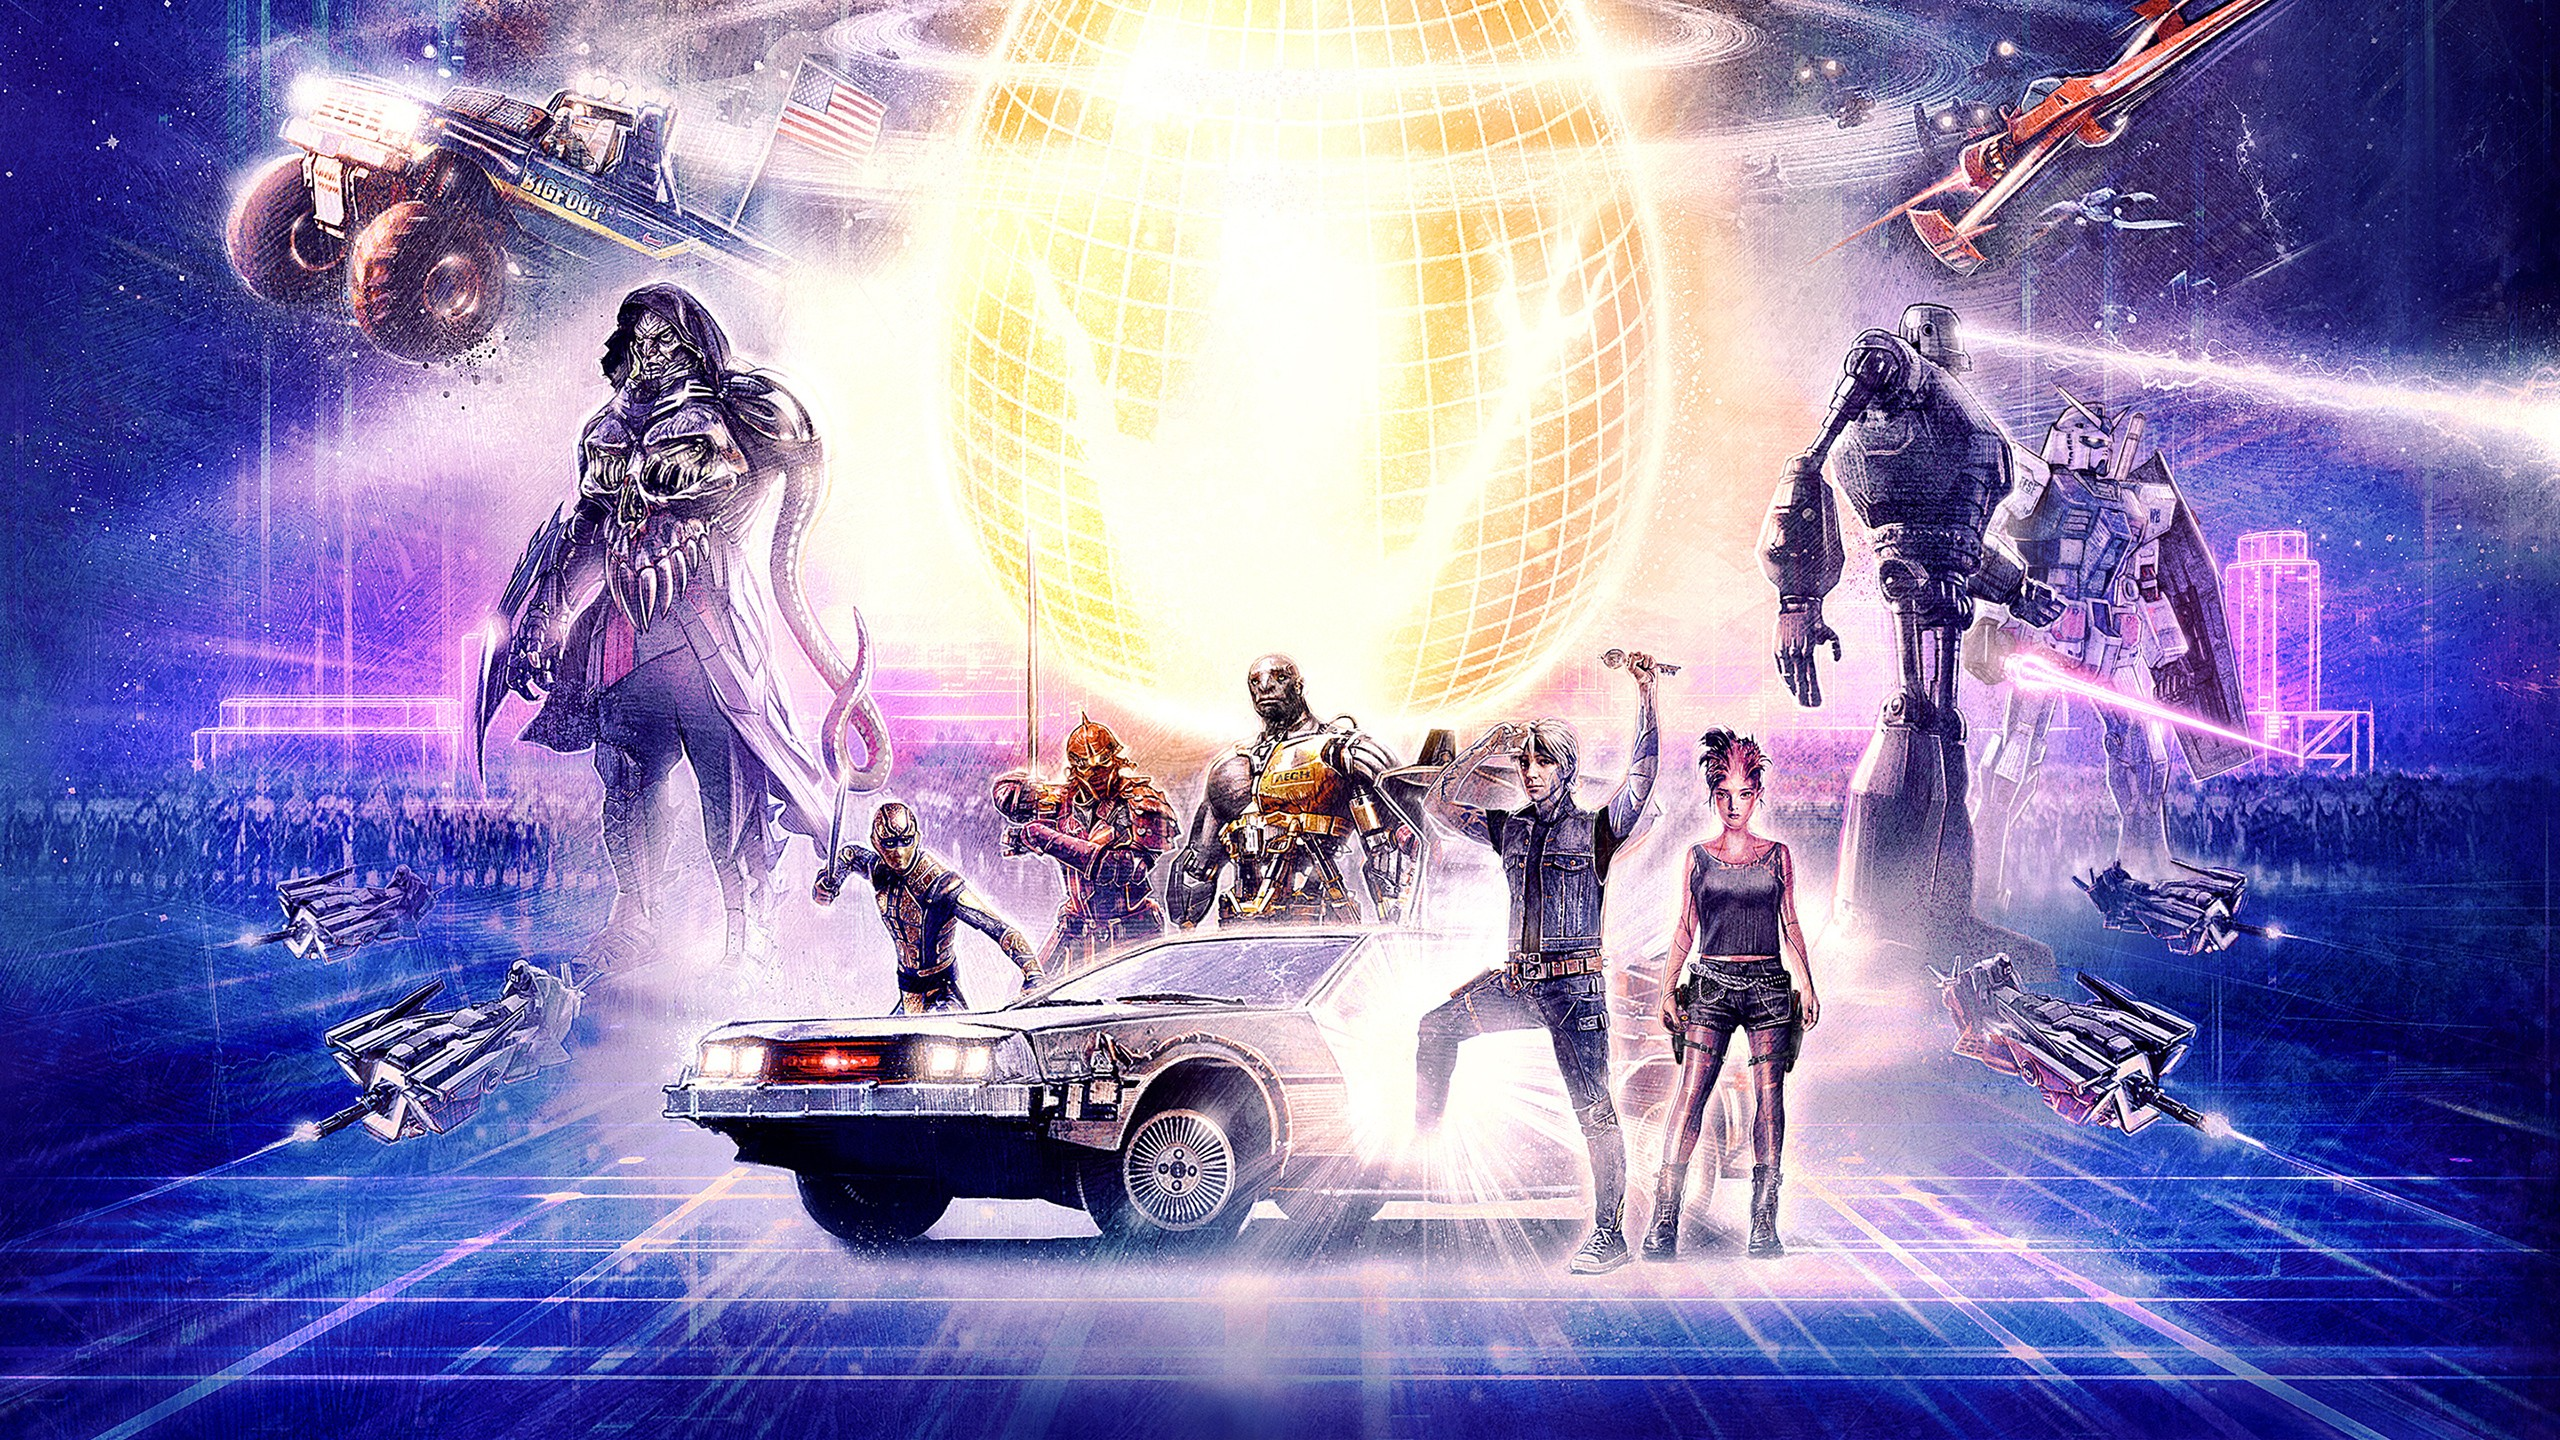 2 Monitor Wallpaper Hd Ready Player One Artwork 2 Wallpapers Hd Wallpapers Id